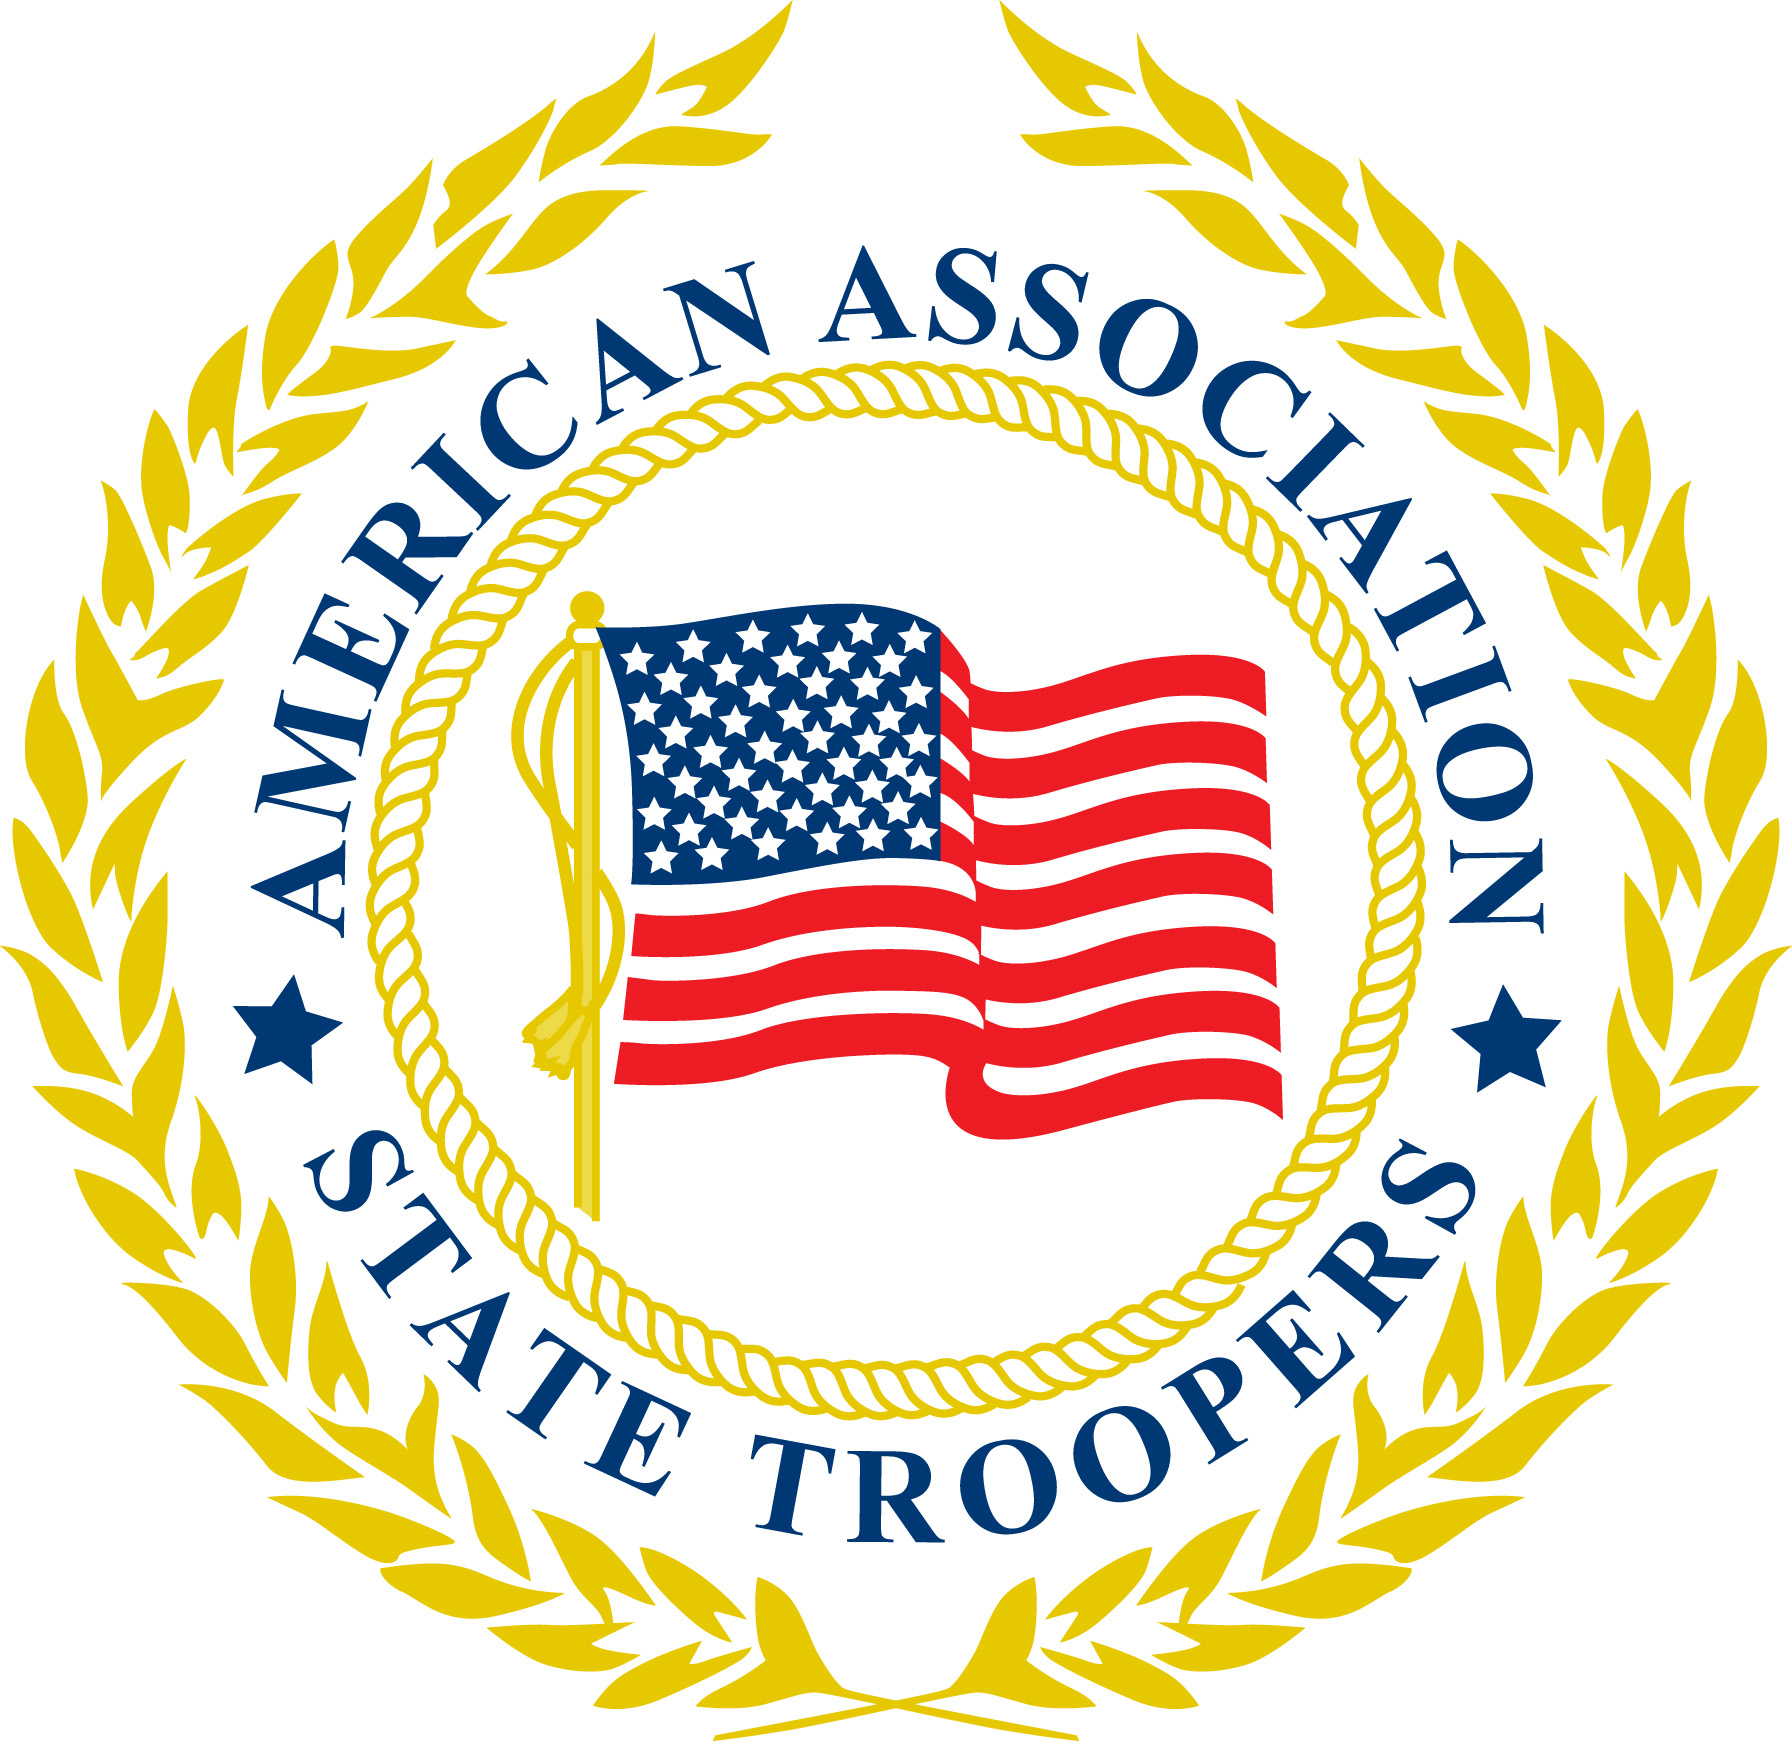 Liberty ammunition launches fundraising campaign to benefit liberty ammunition has launched a special fundraiser to support the association of state troopers inc aast a national fraternal organization composed buycottarizona